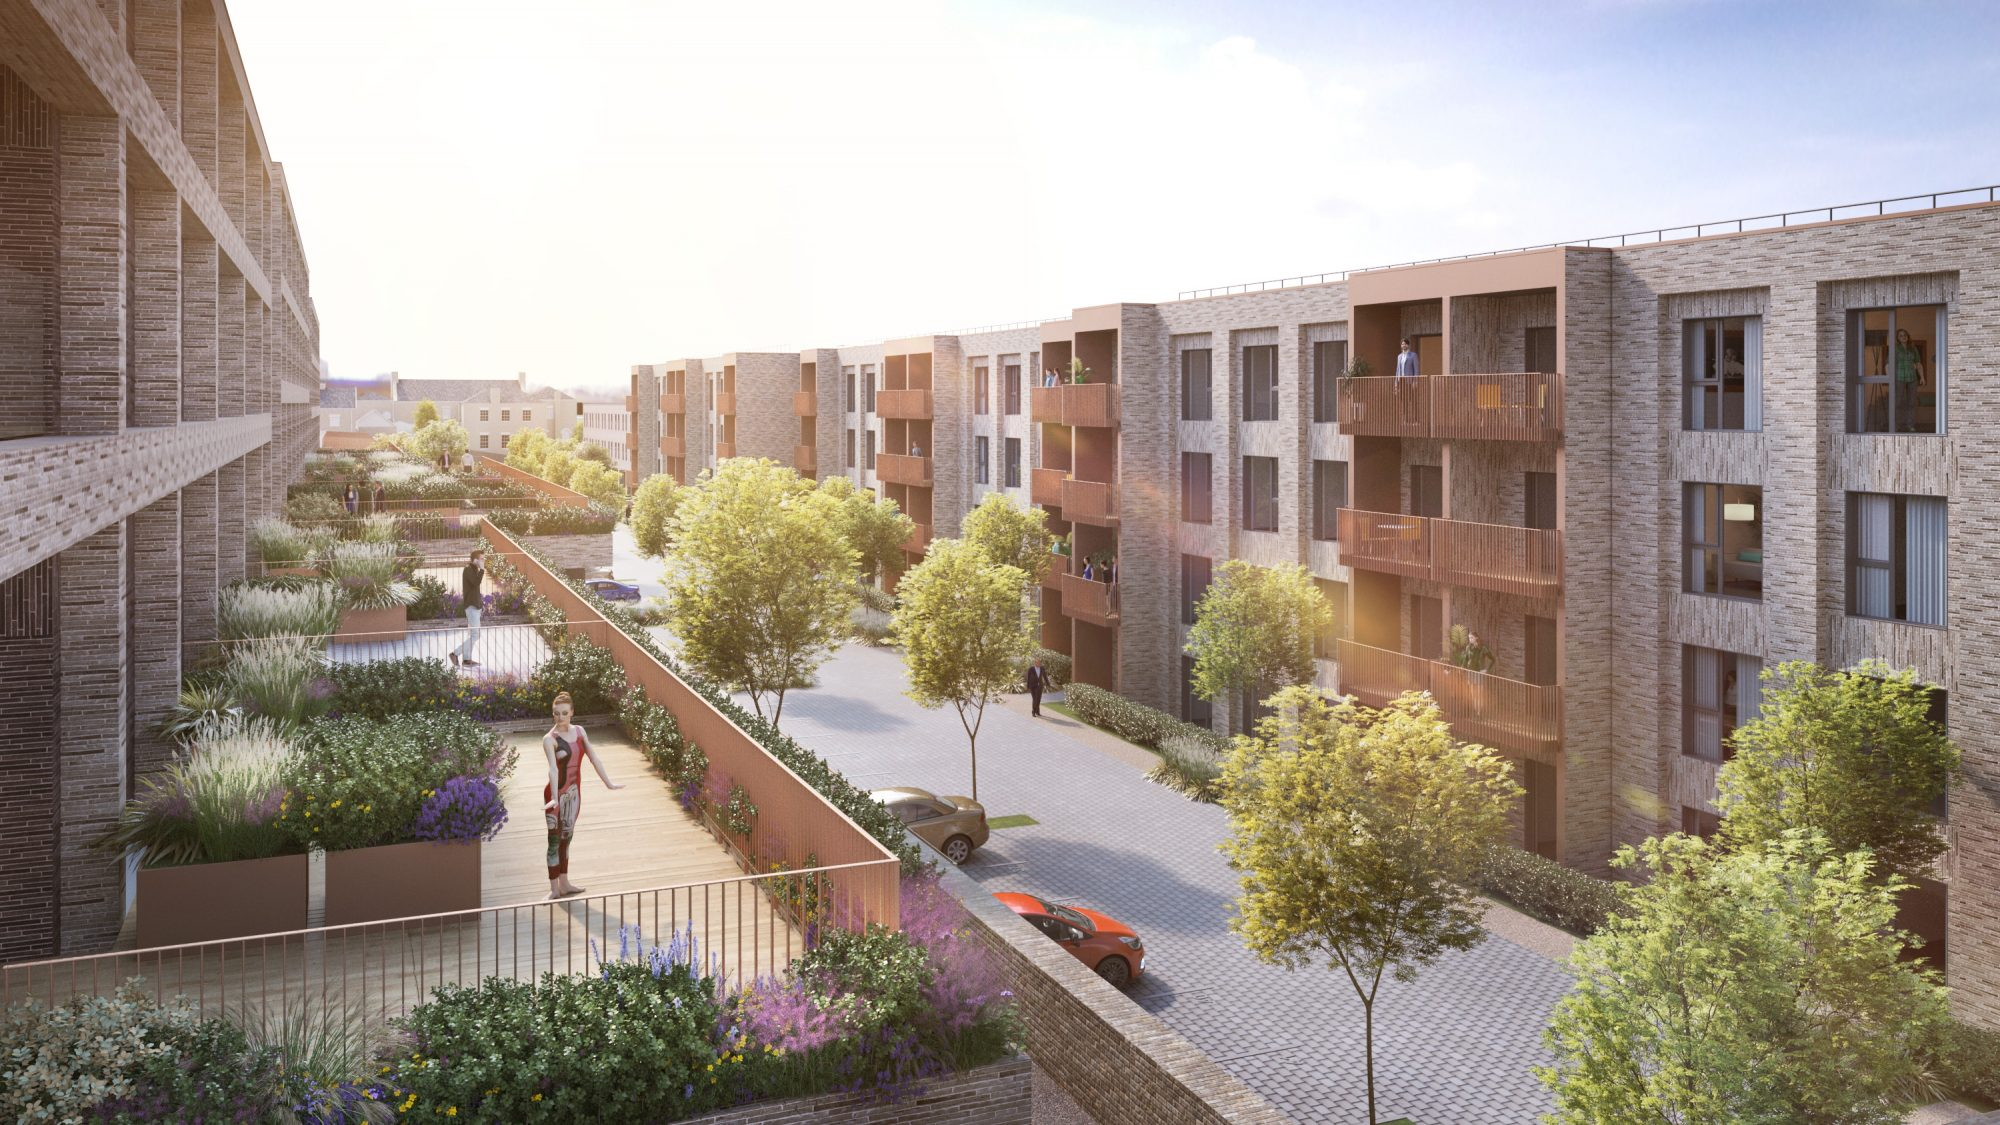 TopHat to launch factory-built apartments in Kent